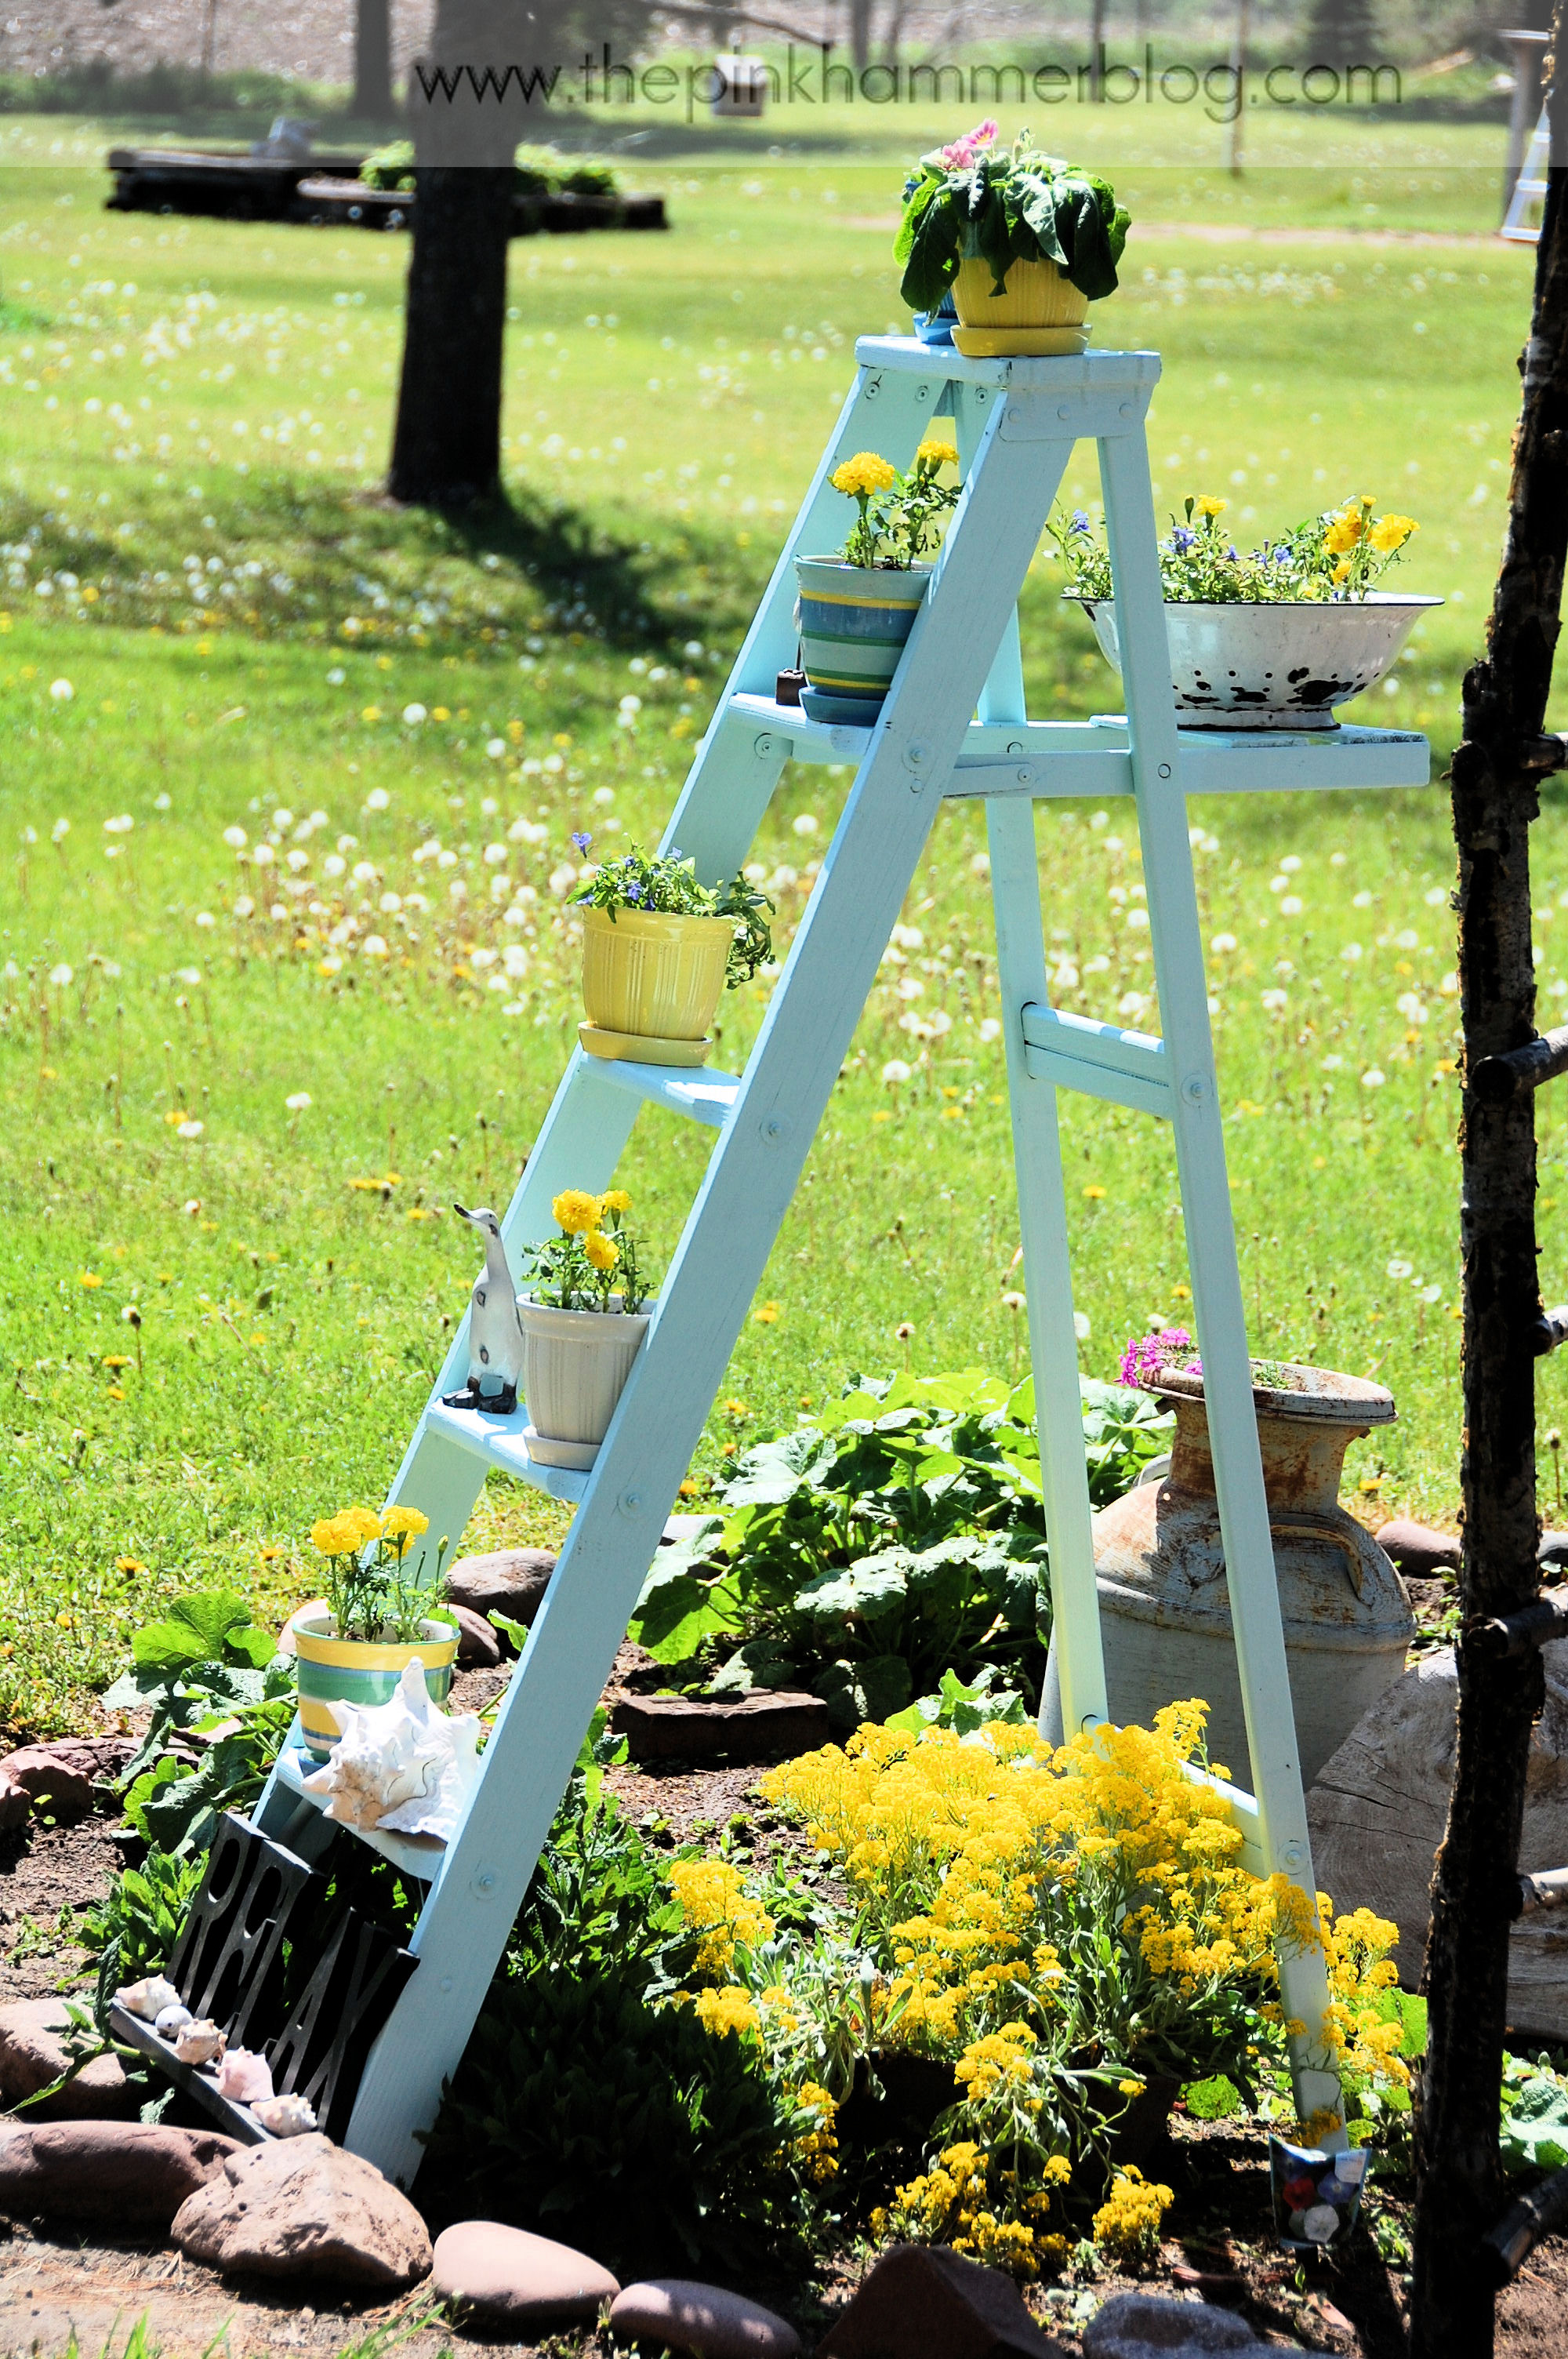 How to turn an old ladder into a beautiful plant stand simple garden diy the pink hammer blog - Ladder plant stand plans free ...